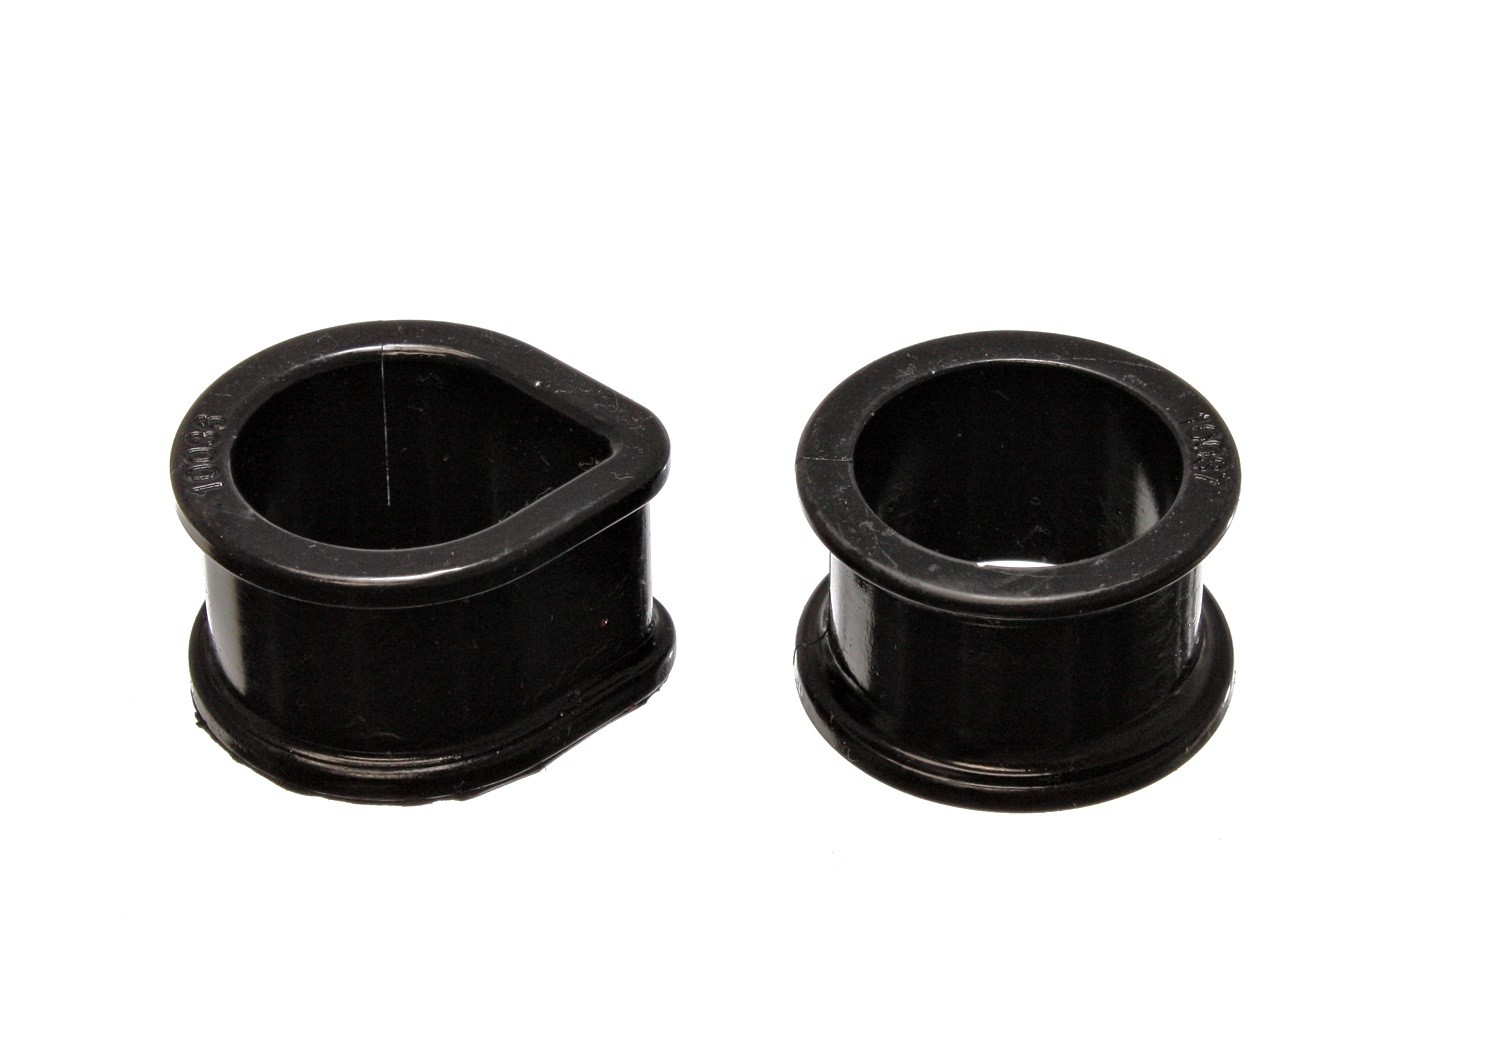 ENERGY SUSPENSION - Rack and Pinion Mount Bushing - XGZ 7.10103G